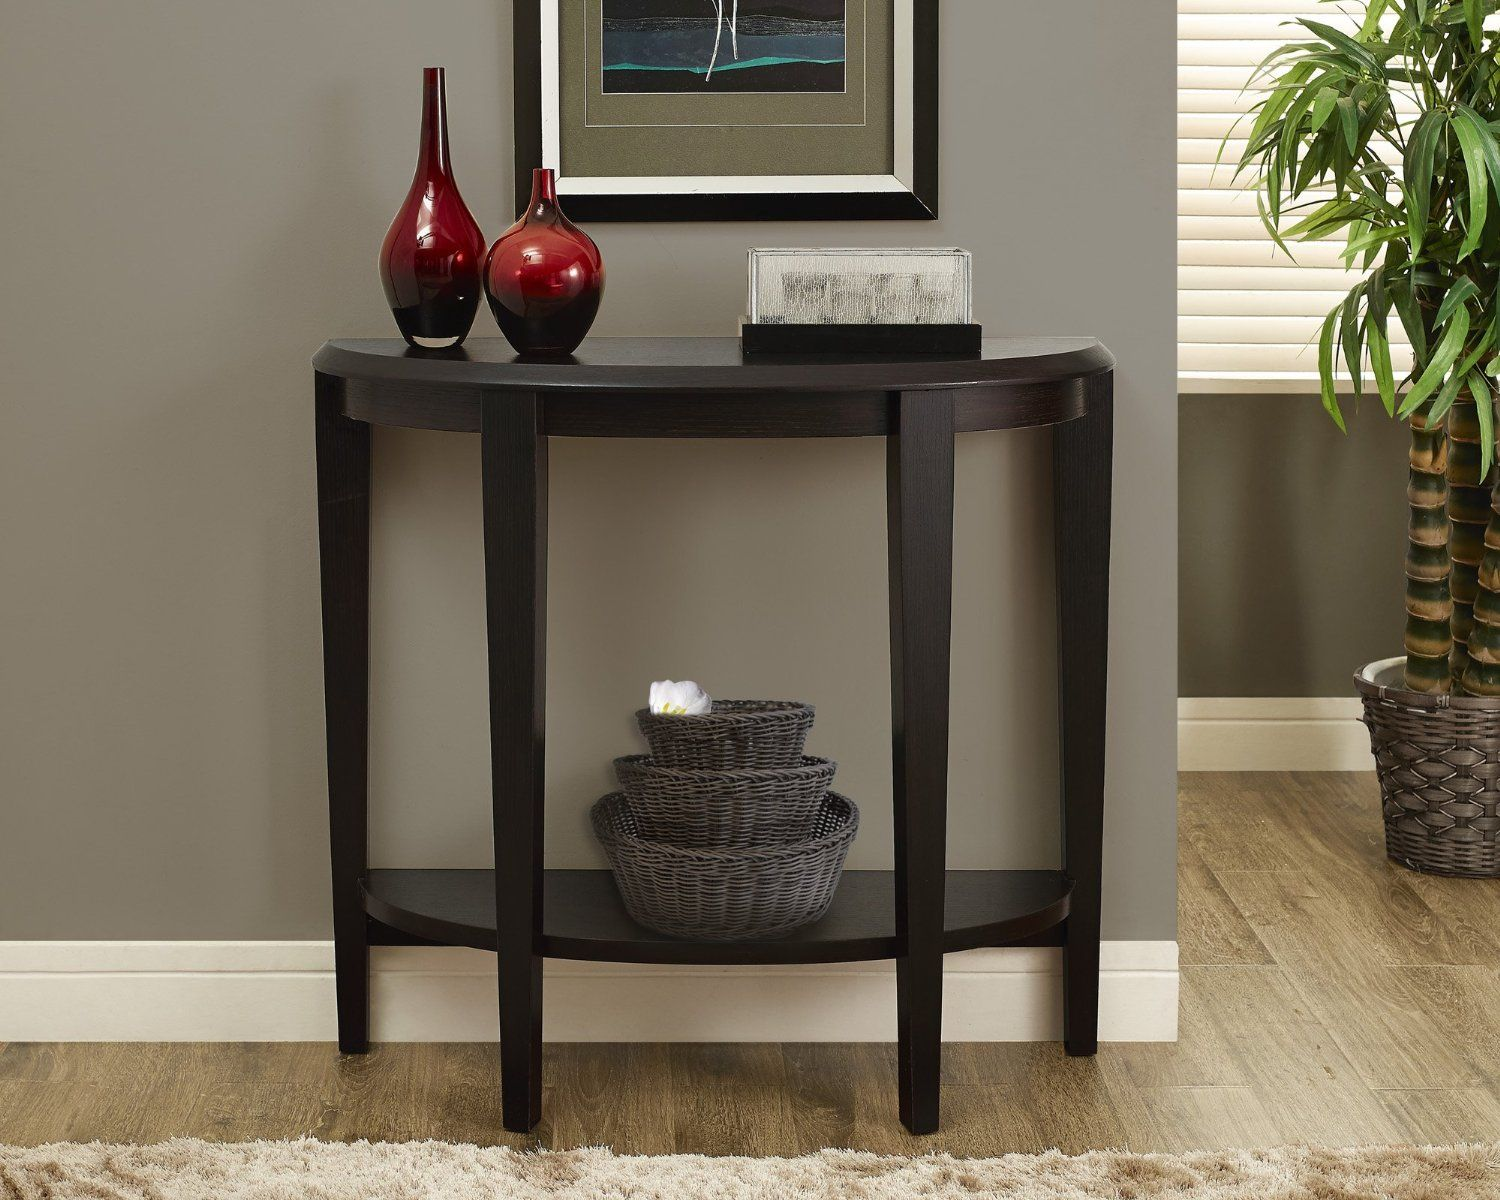 Monarch Specialties Cuccino Hall Console Accent Table 36 Inch Kitchen Dining